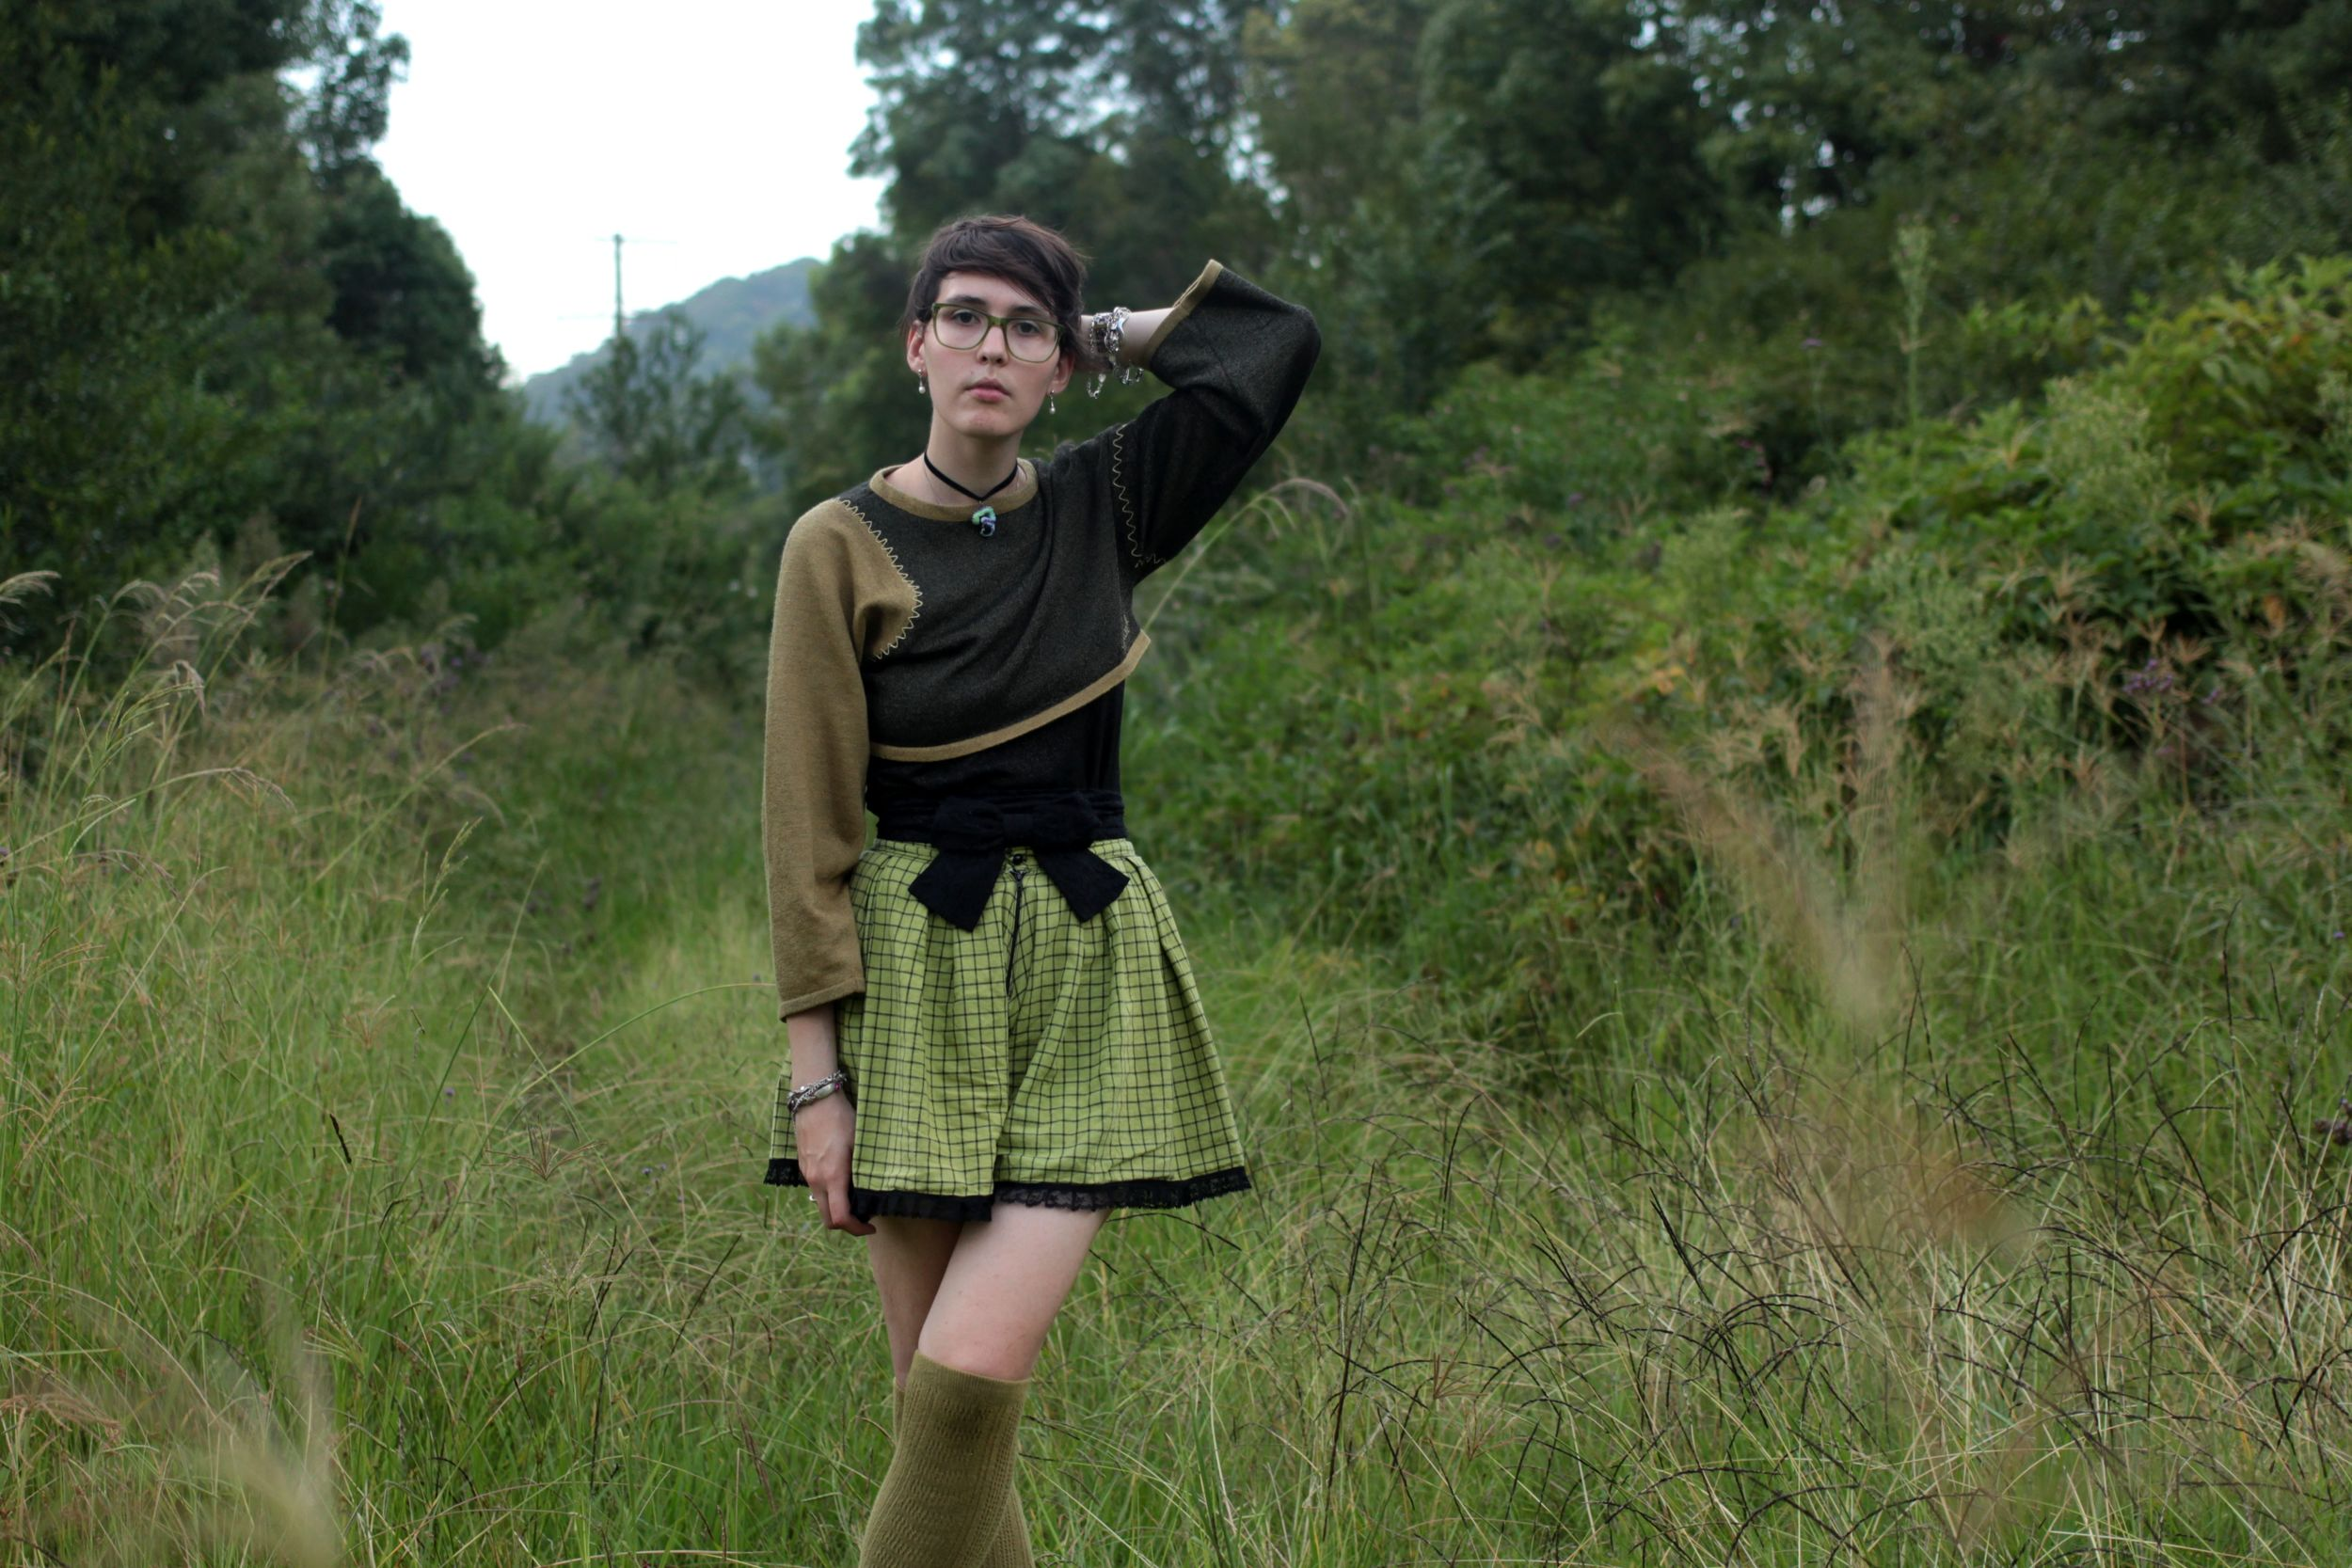 Jumper: Thrifted, Shirt: Cotton On Belt: Alannah Hill, Skort: Home Made, Socks: Gifted, Shoes: Dr Martens.